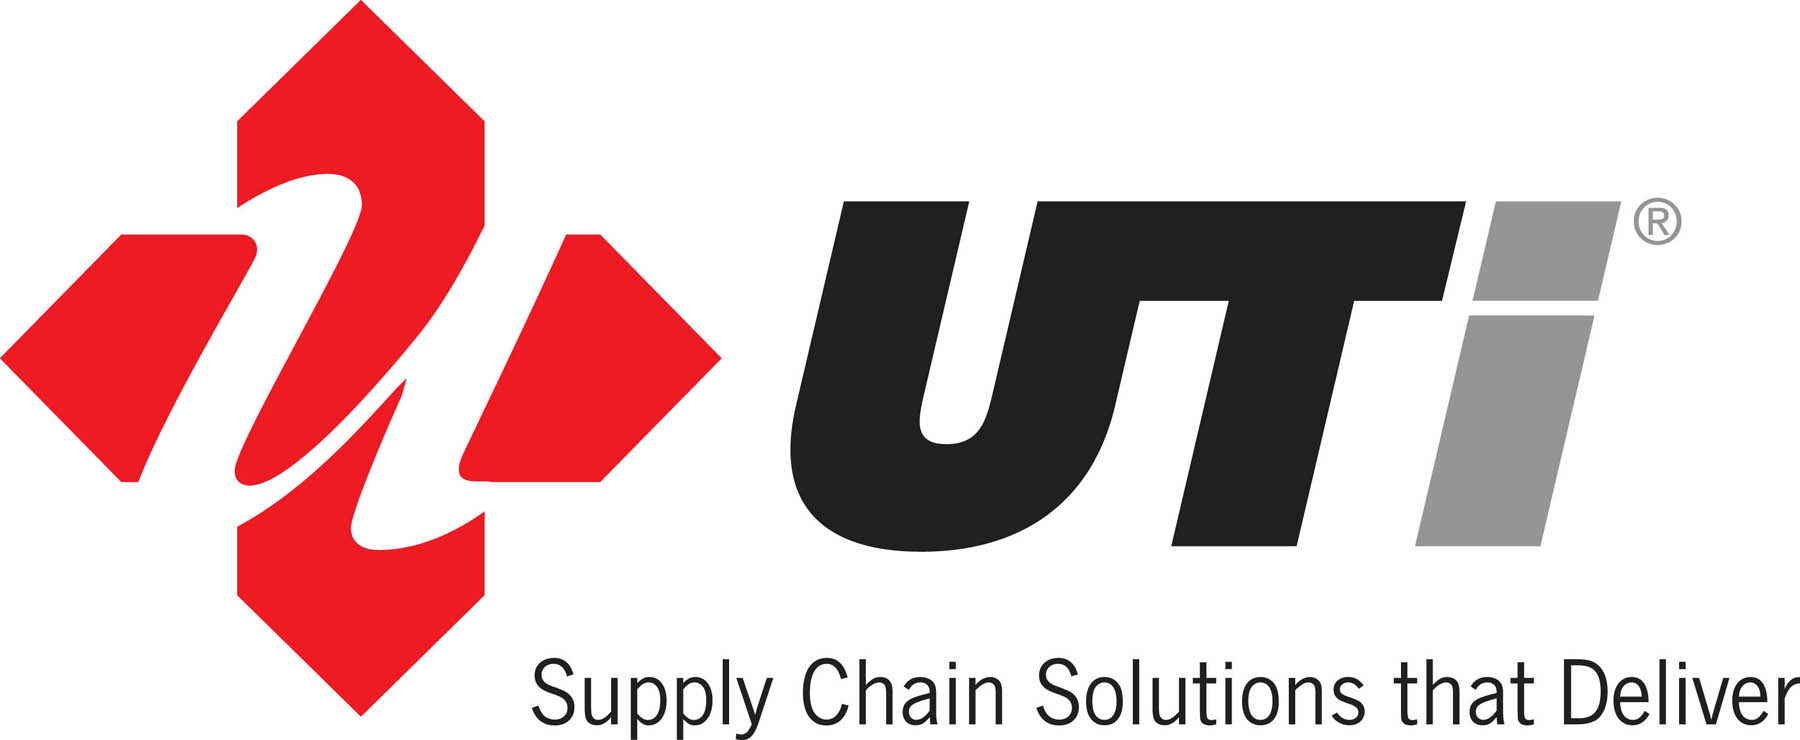 UTi Worldwide Names Bruce Hulings New Global Lead for Projects ...